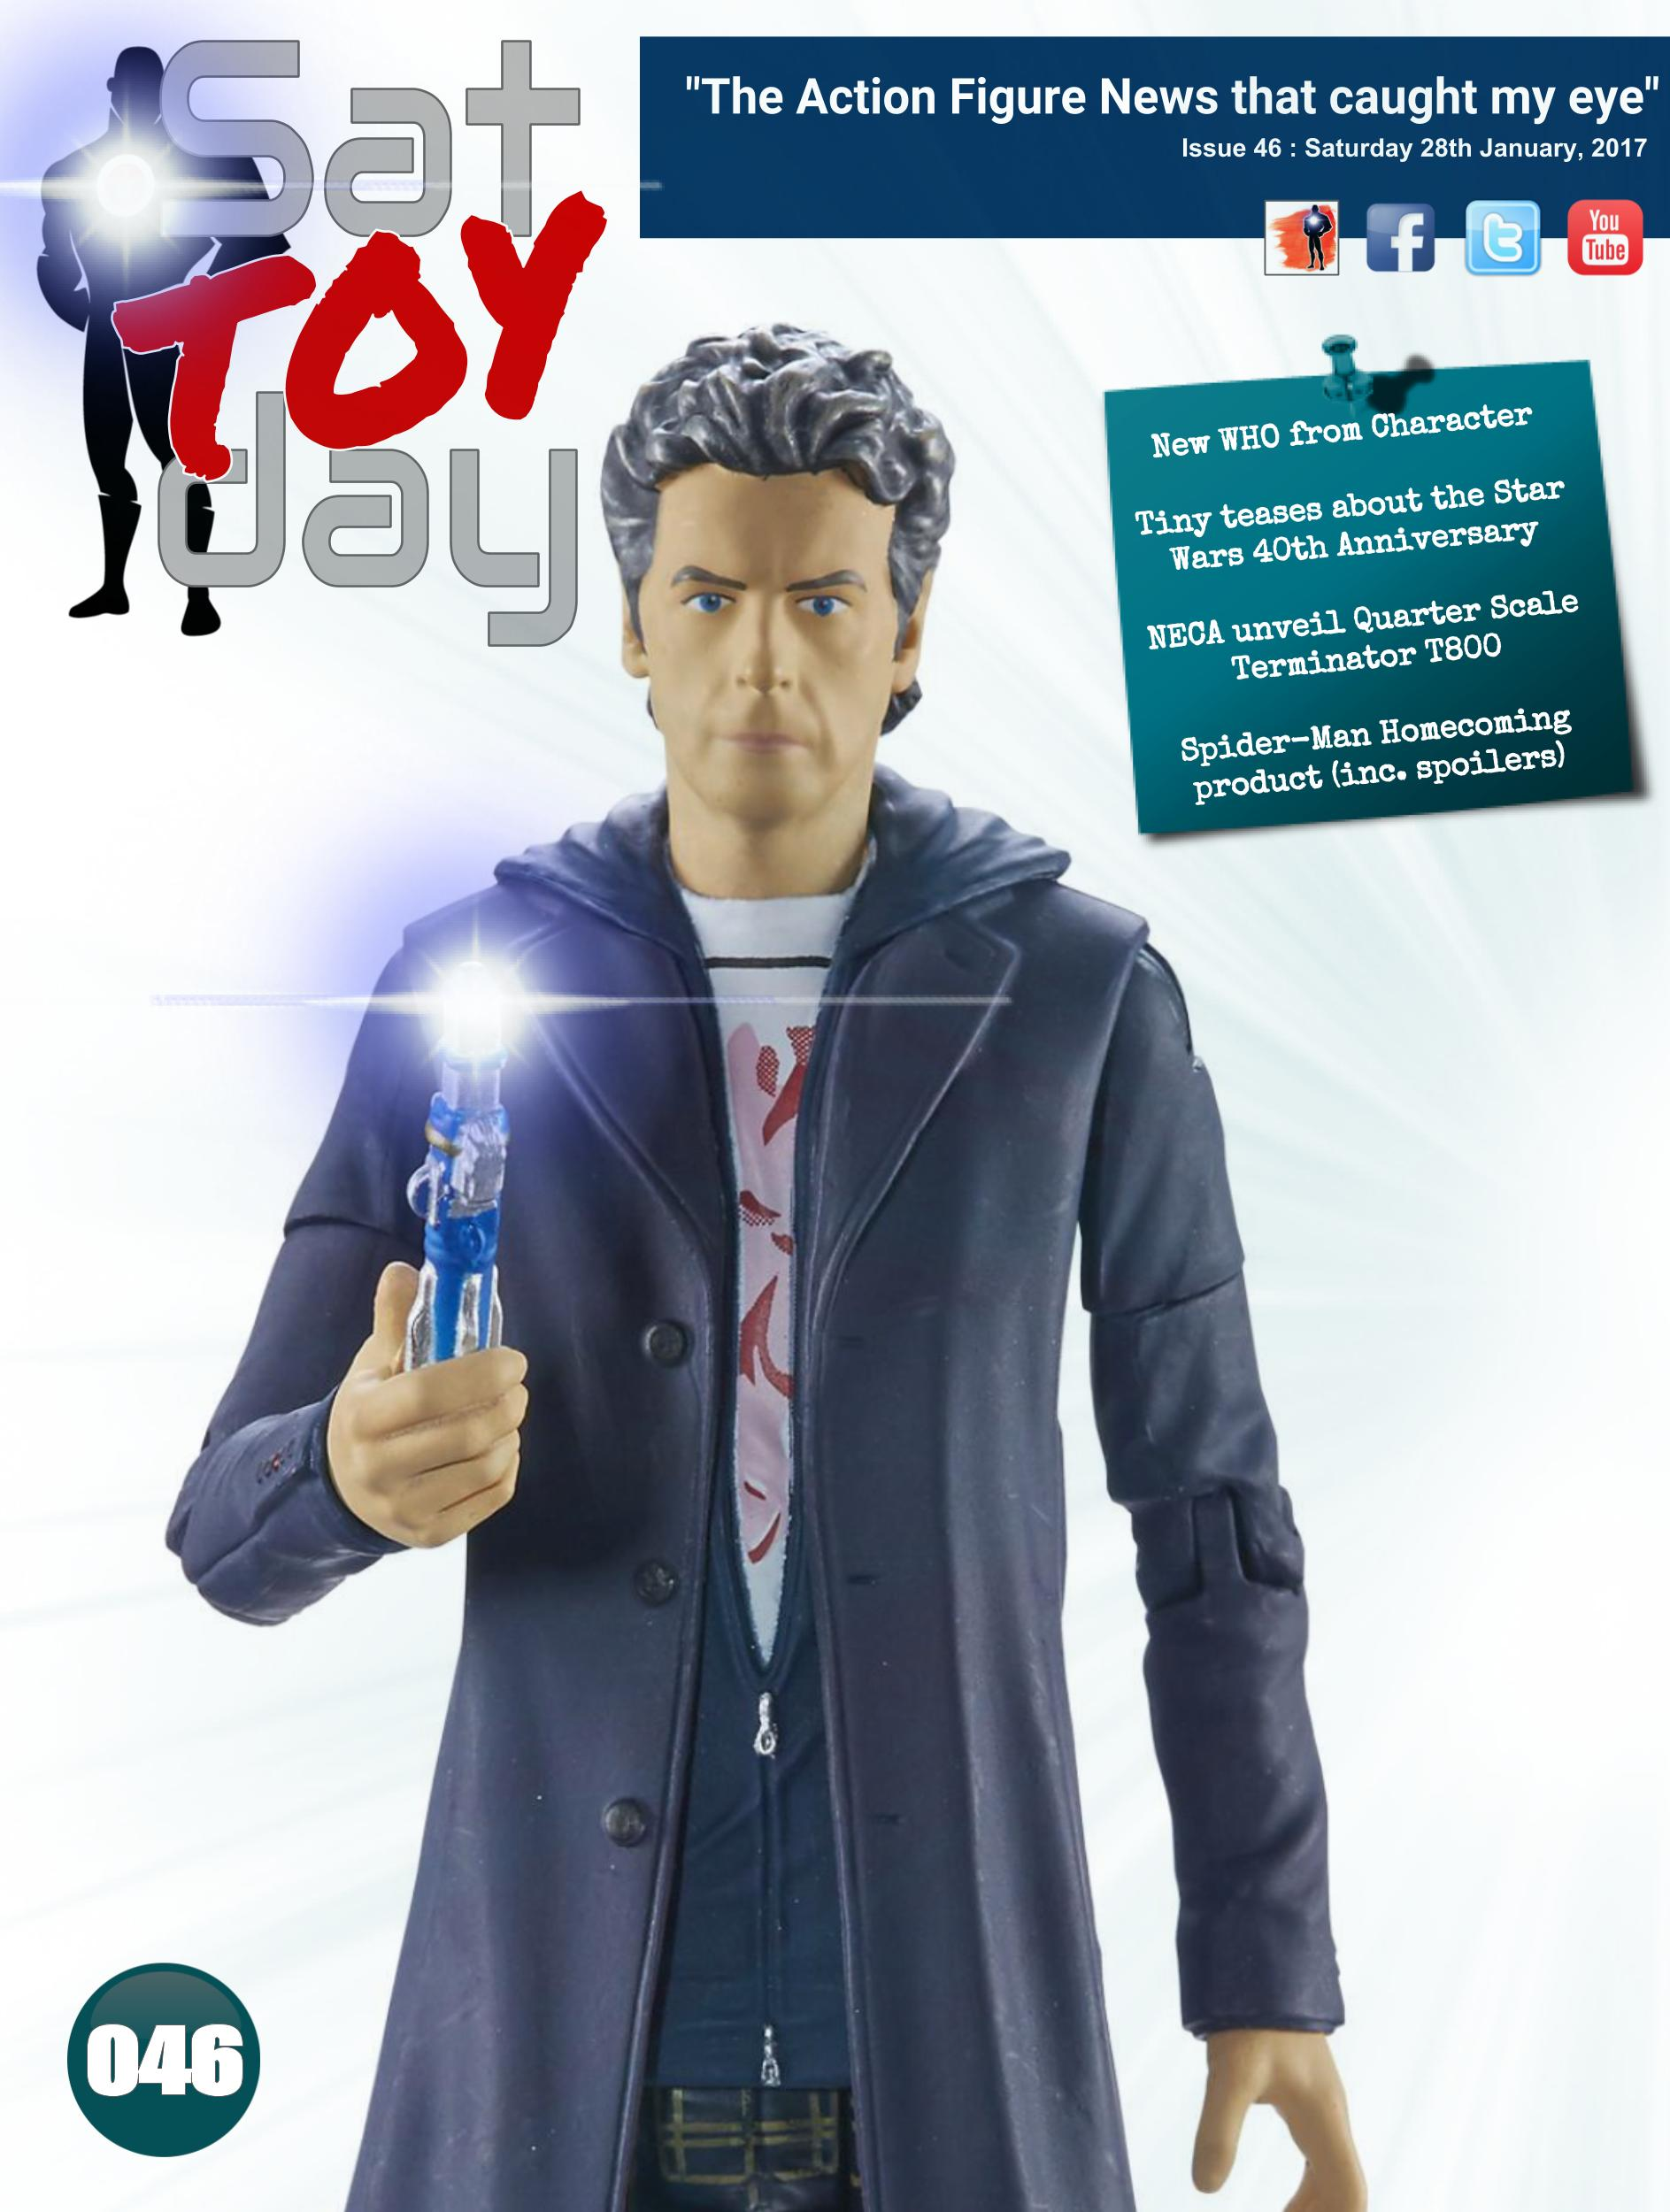 046 Action Figure Sat-TOY-day News, 28th January 2017